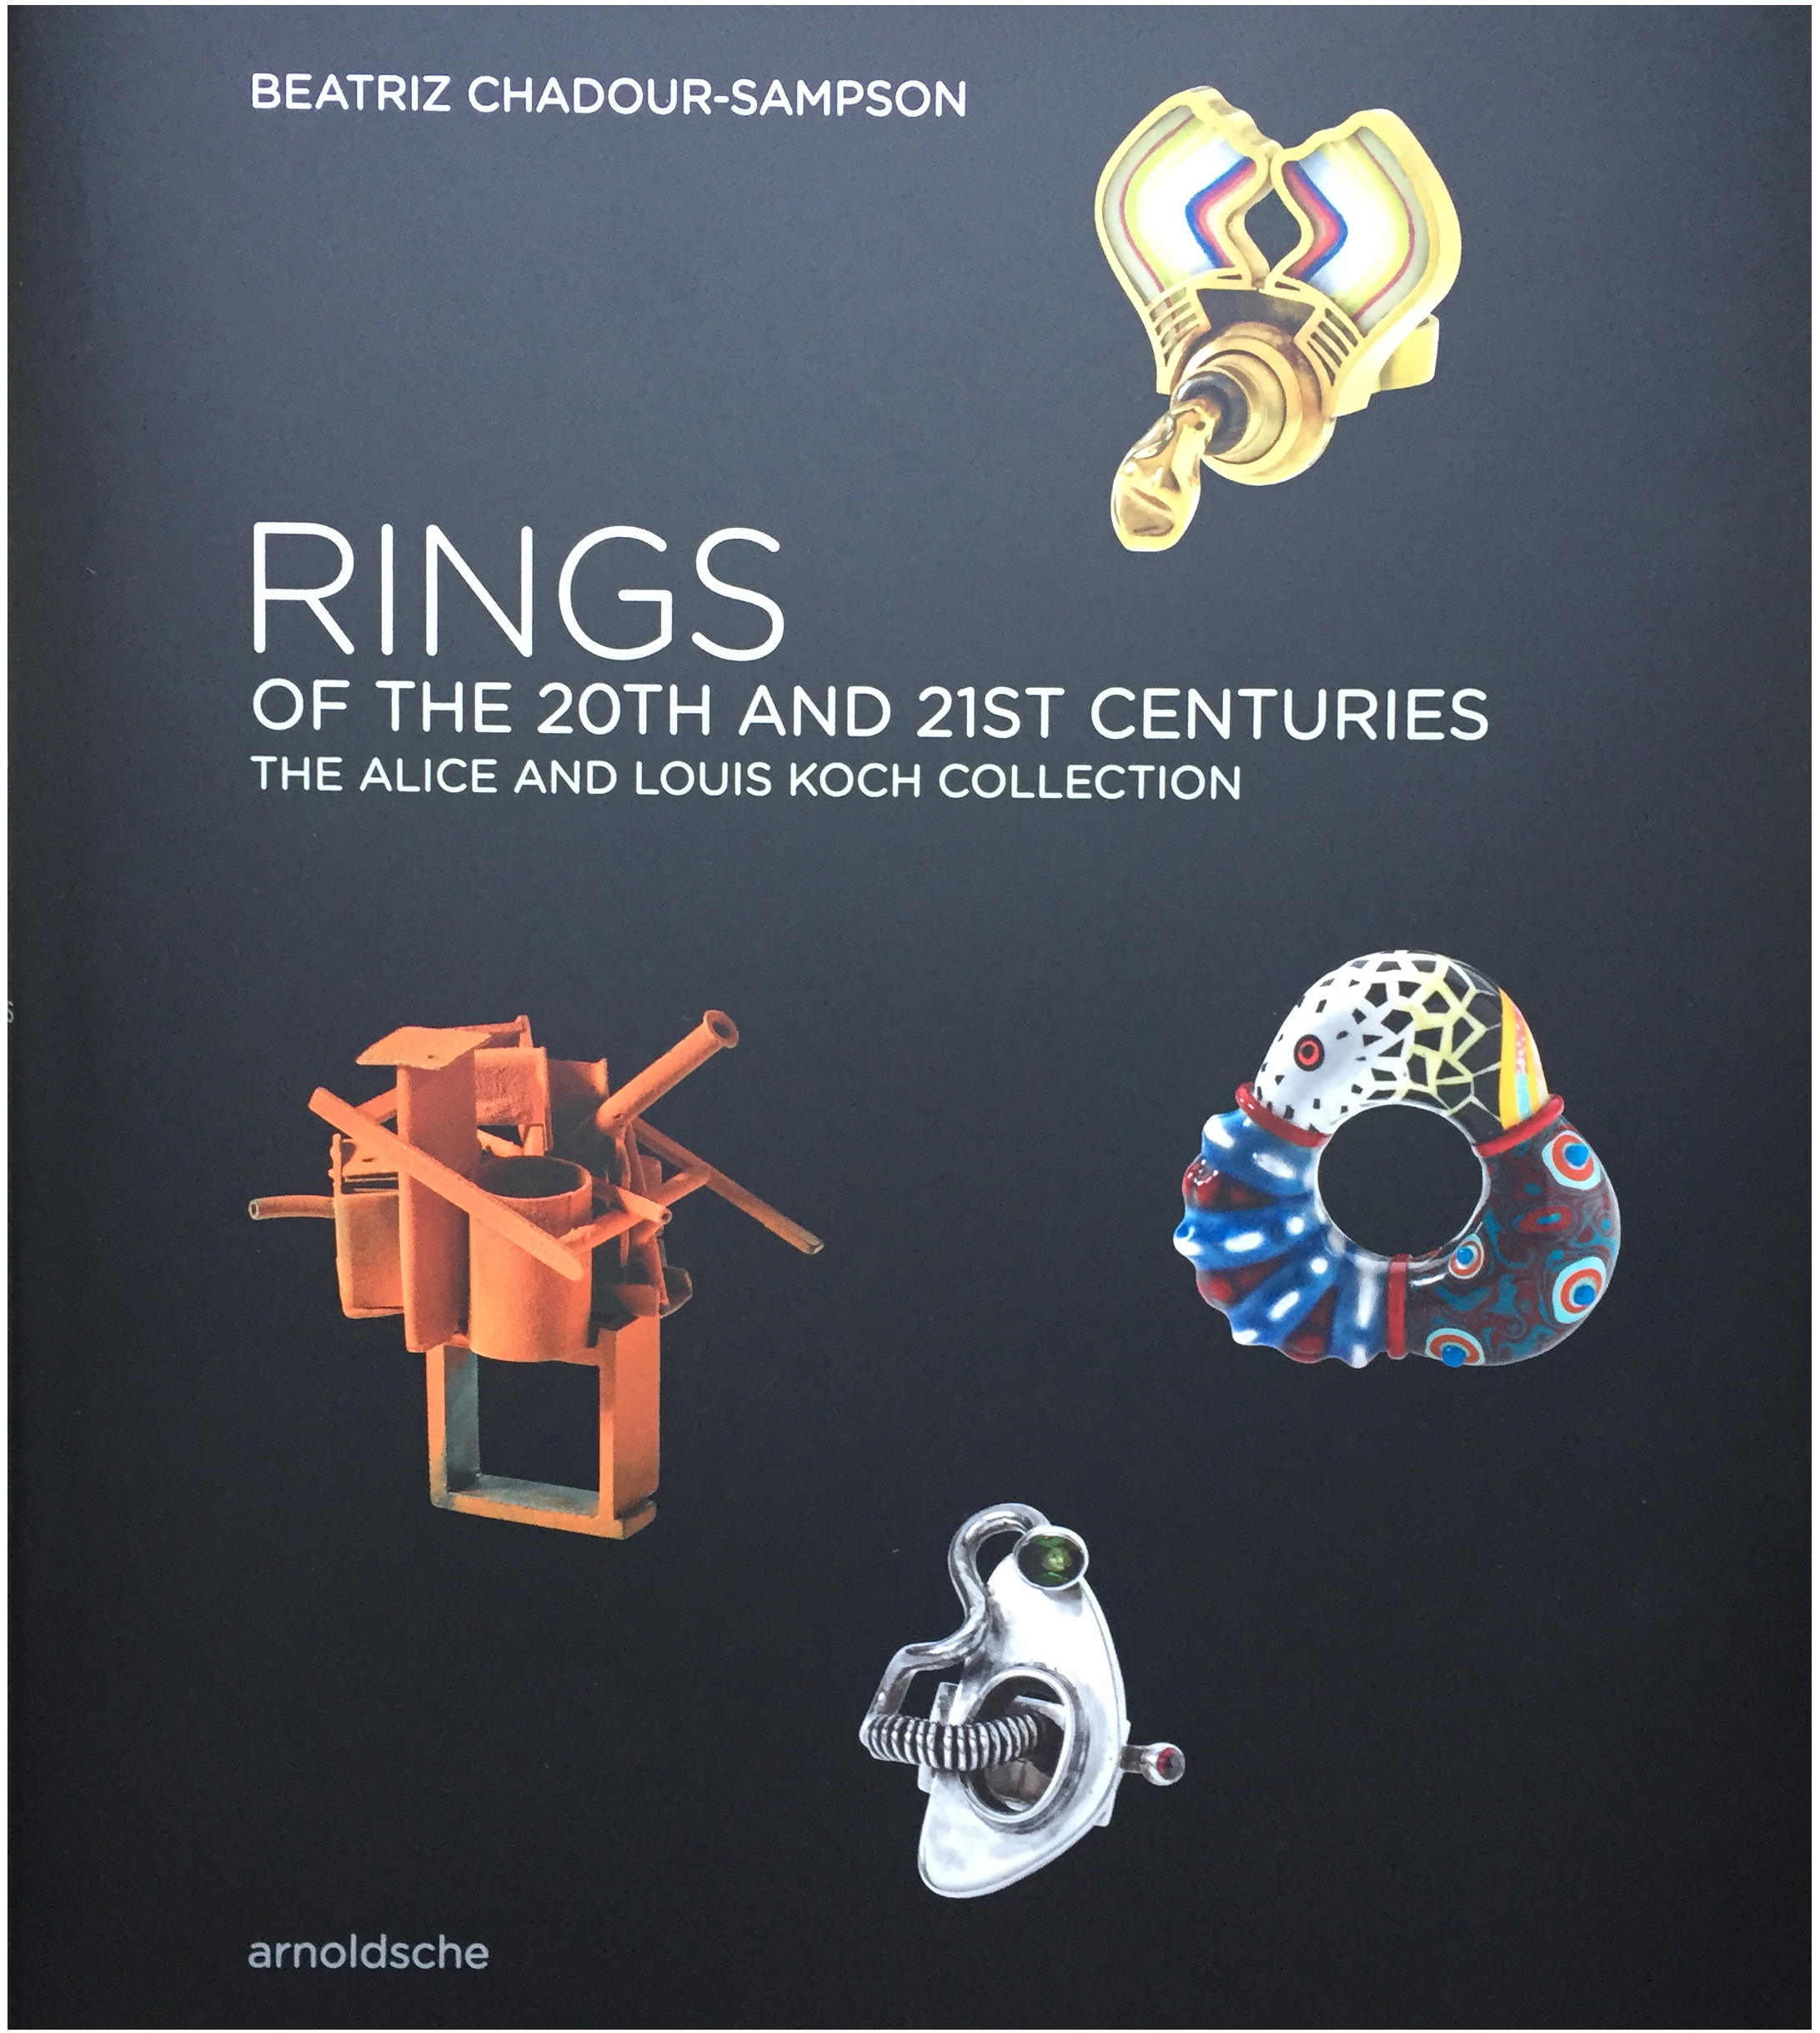 Donna Brennan's Ring is profiled in Beatriz Chadour Sampson's new book, Rings of the 20th and 21st Centuries: The Alice and Louis Koch Collection, published by Arnoldsche 2019